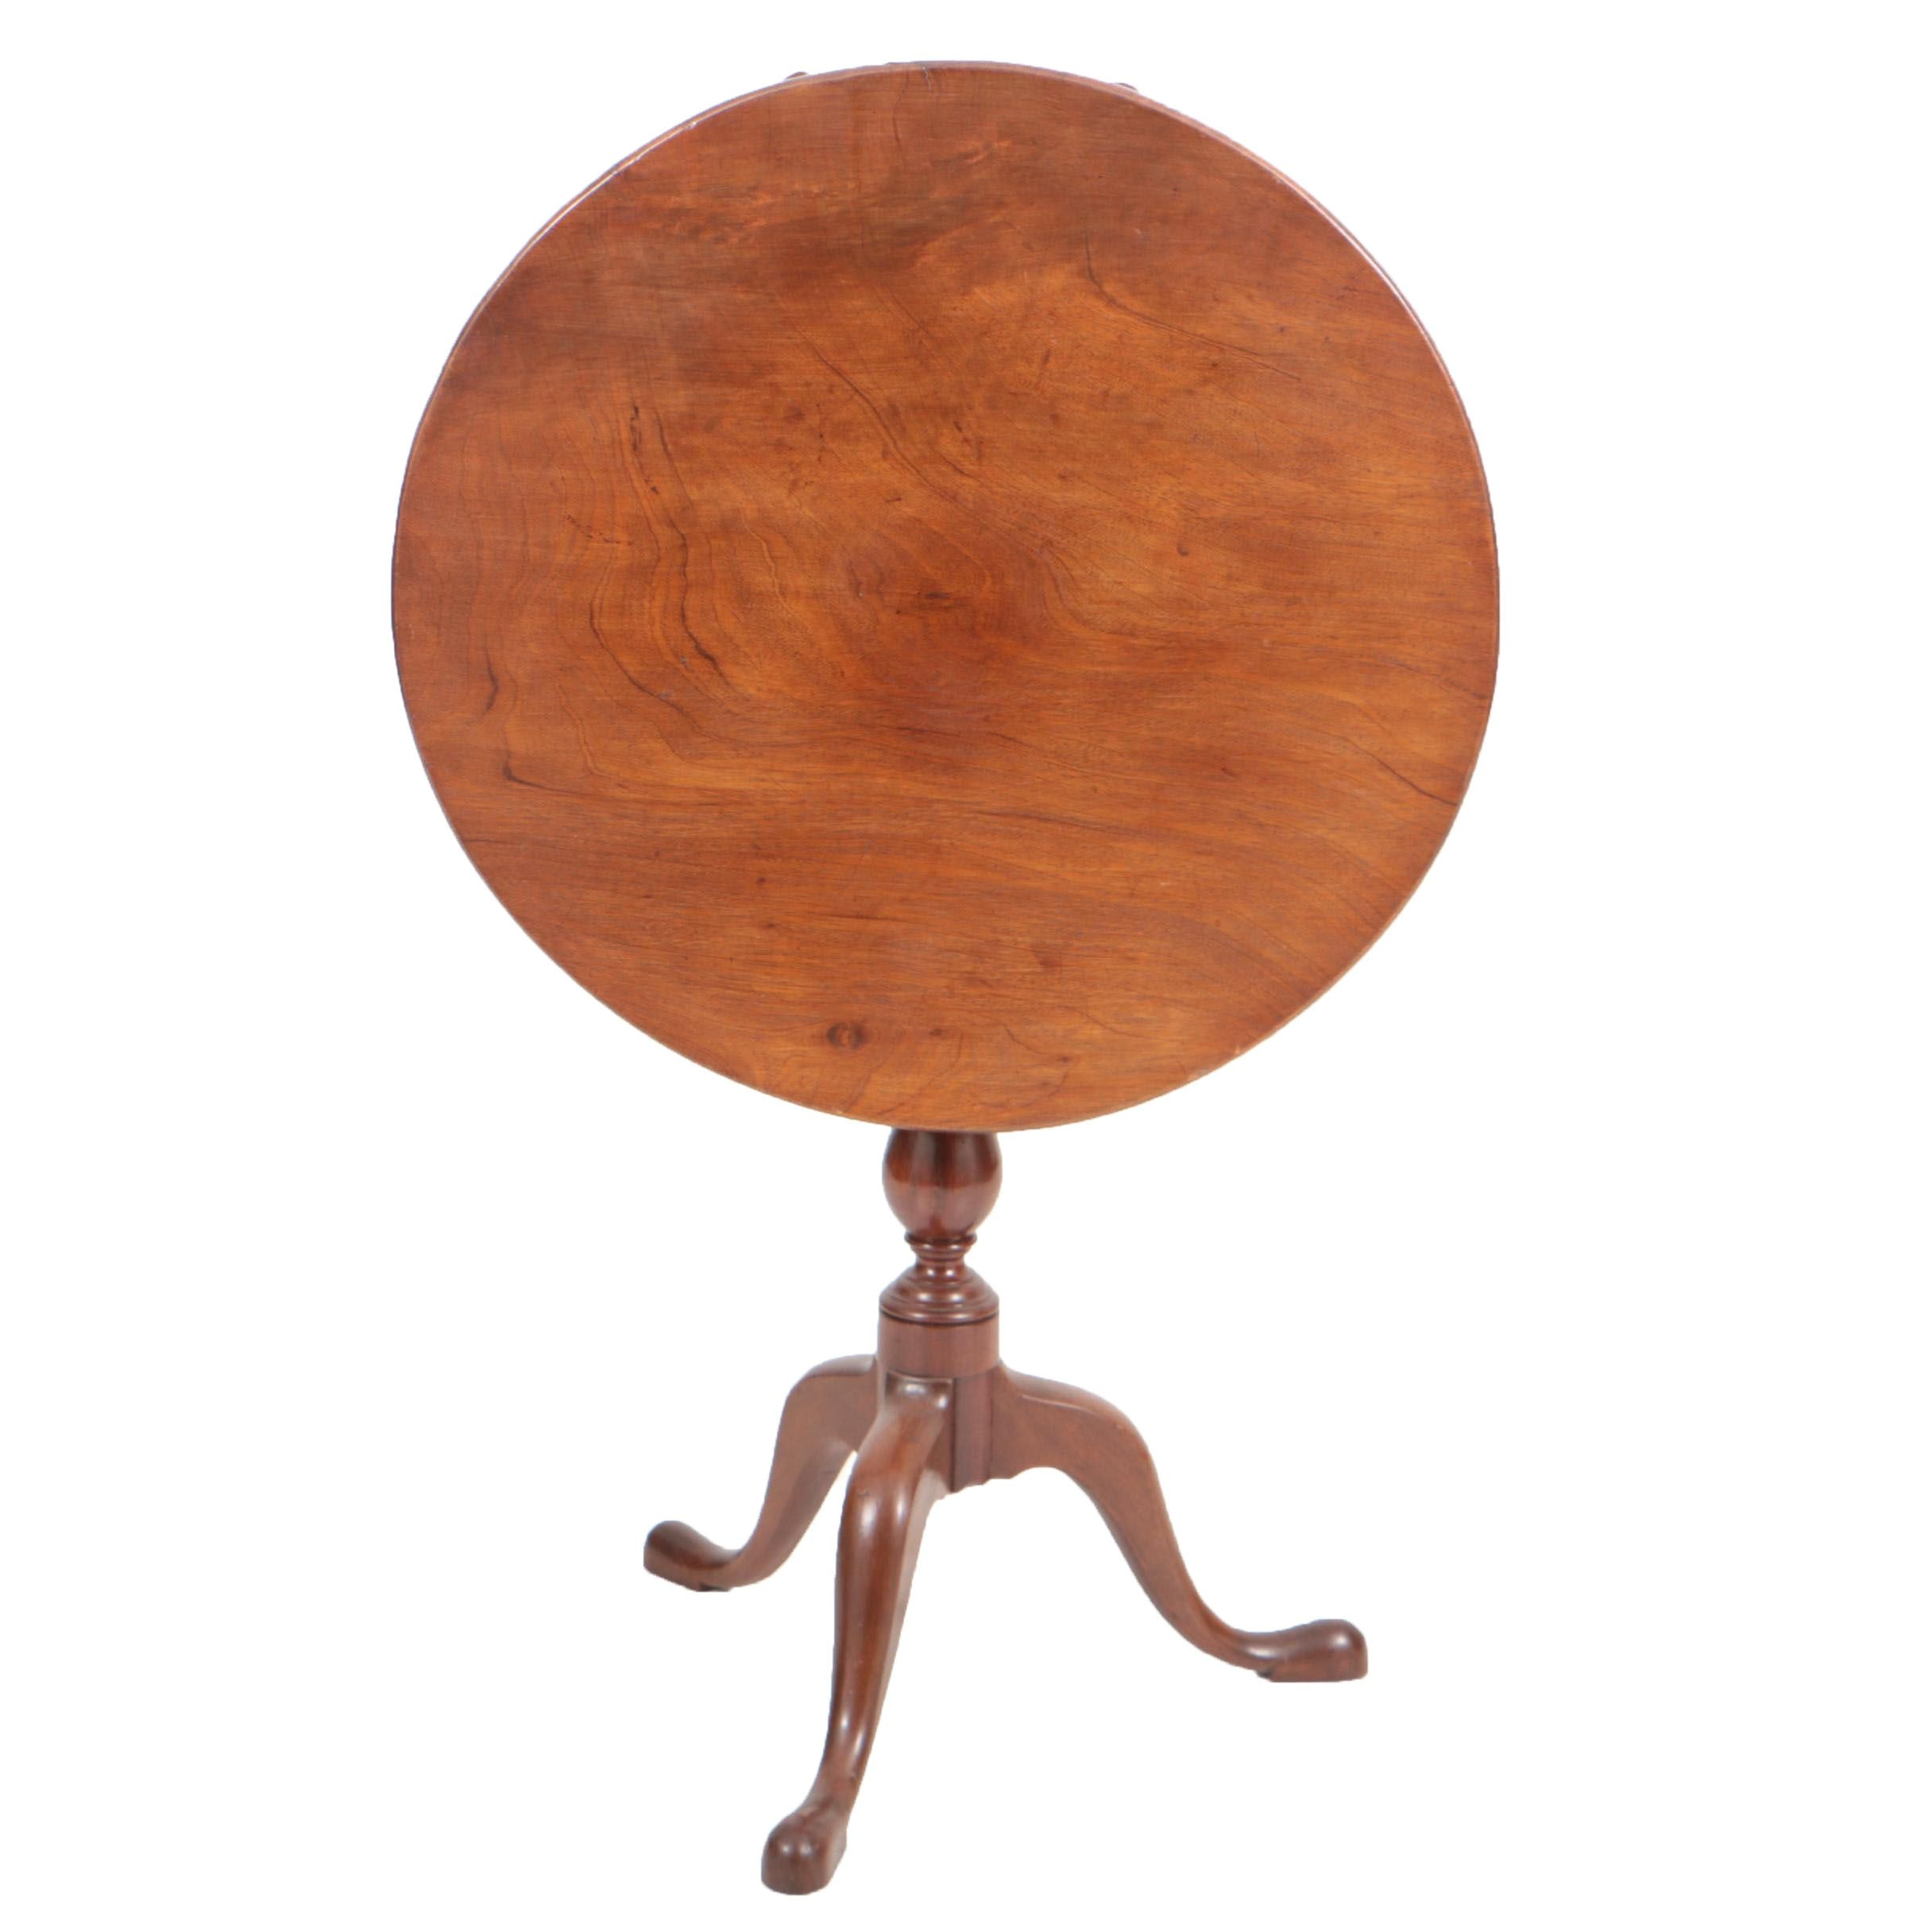 George III Mahogany Tilt-Top Tripod Table, Late 18th Century